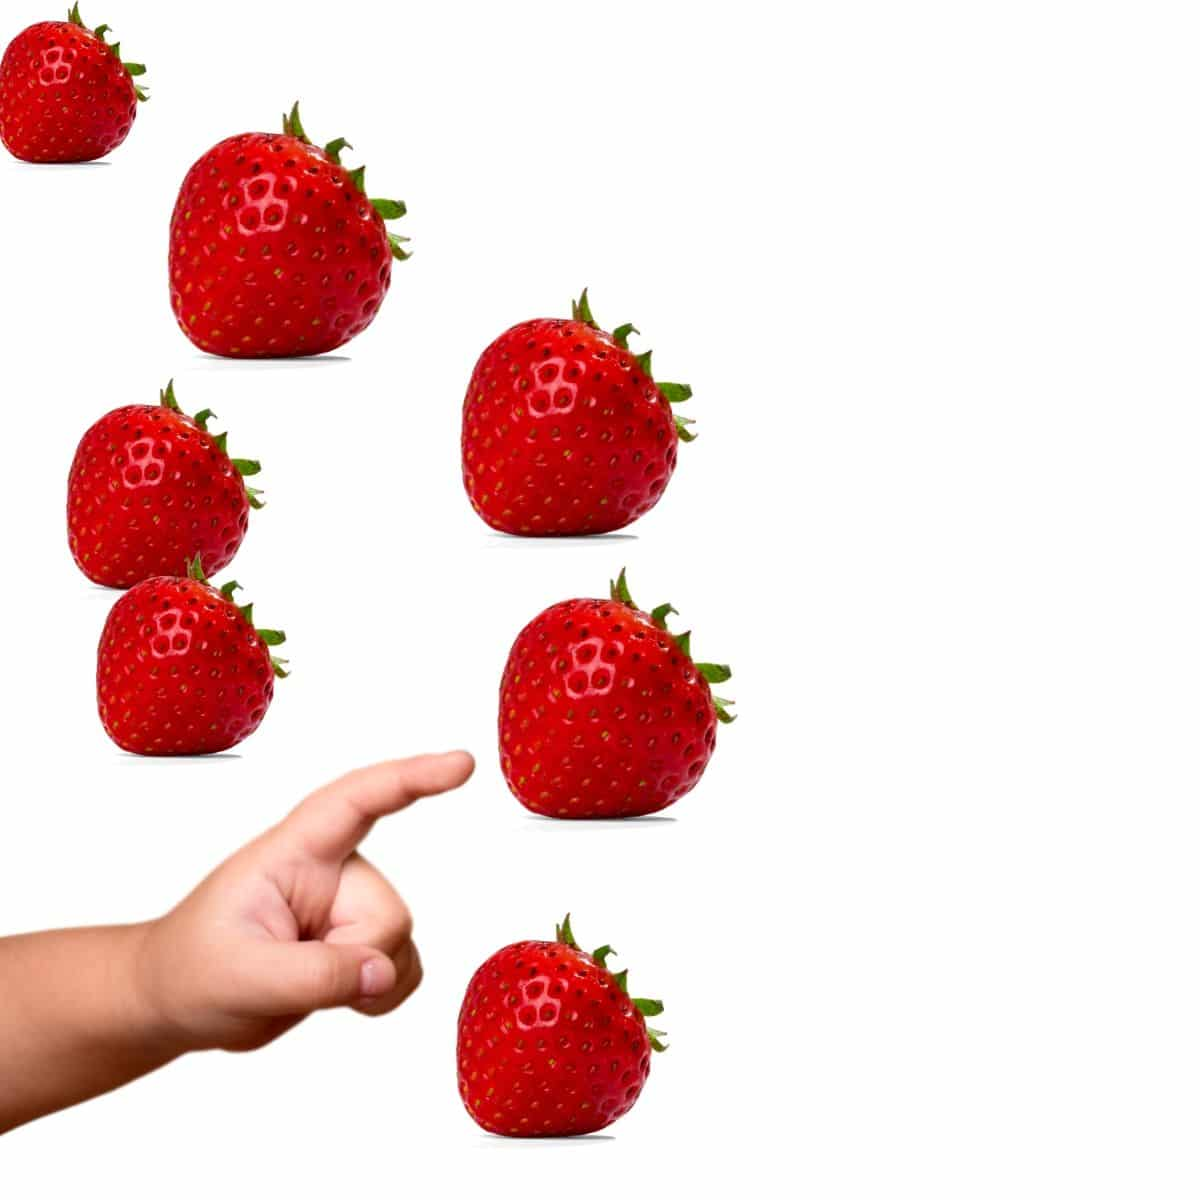 Child pointing to Strawberries